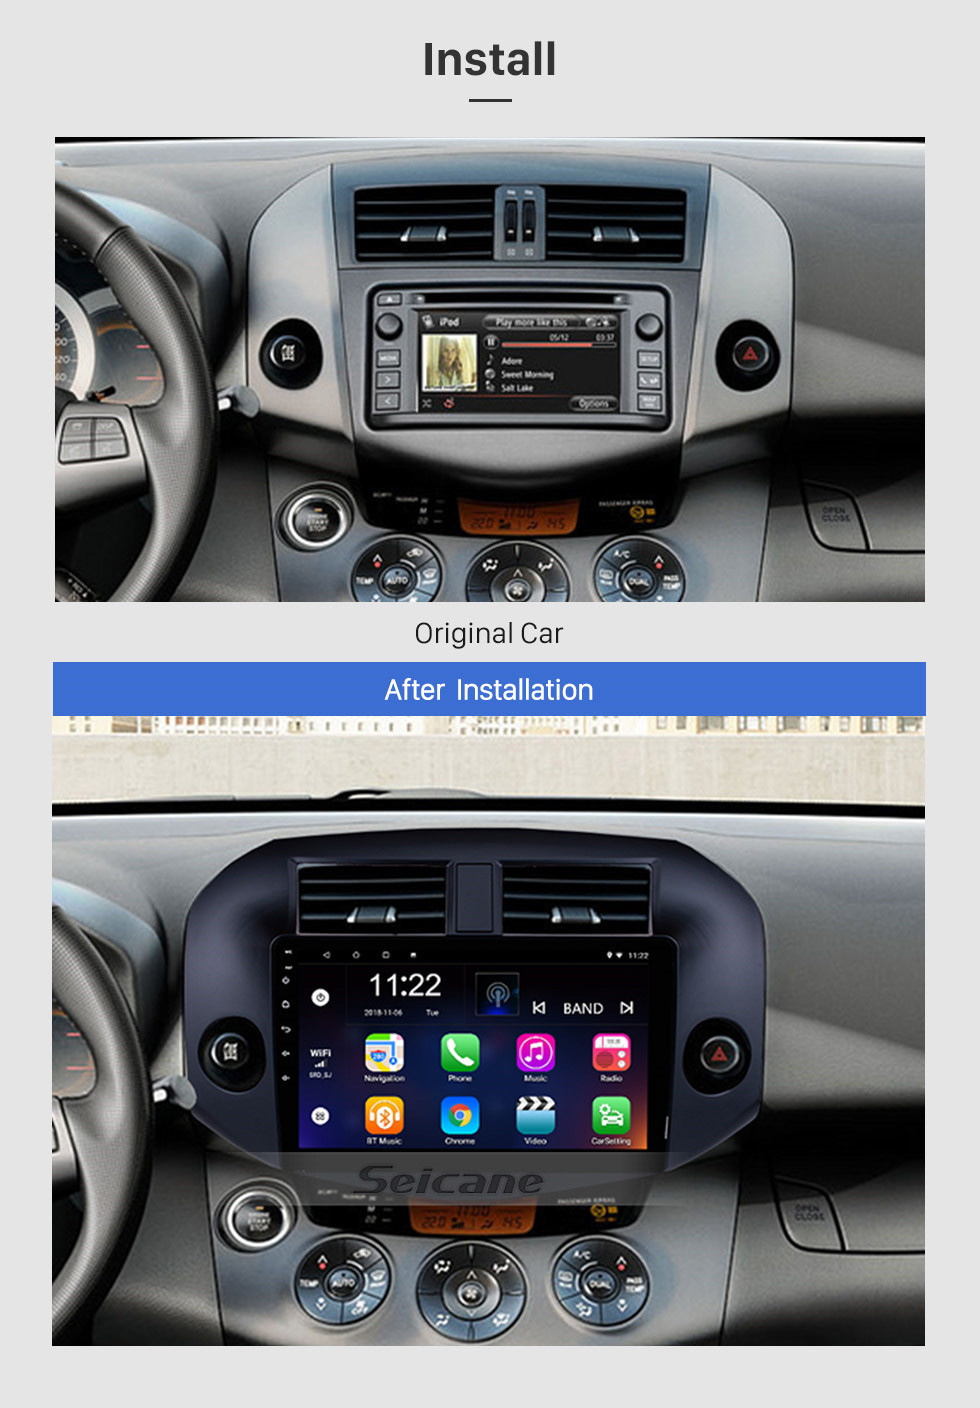 Seicane OEM Android 10.0 Radio for 2007-2011 Toyota RAV4 10.1 inch HD Touch Screen Bluetooth GPS Navigation USB WIFI Music SWC OBD DVR Rearview Camera TV